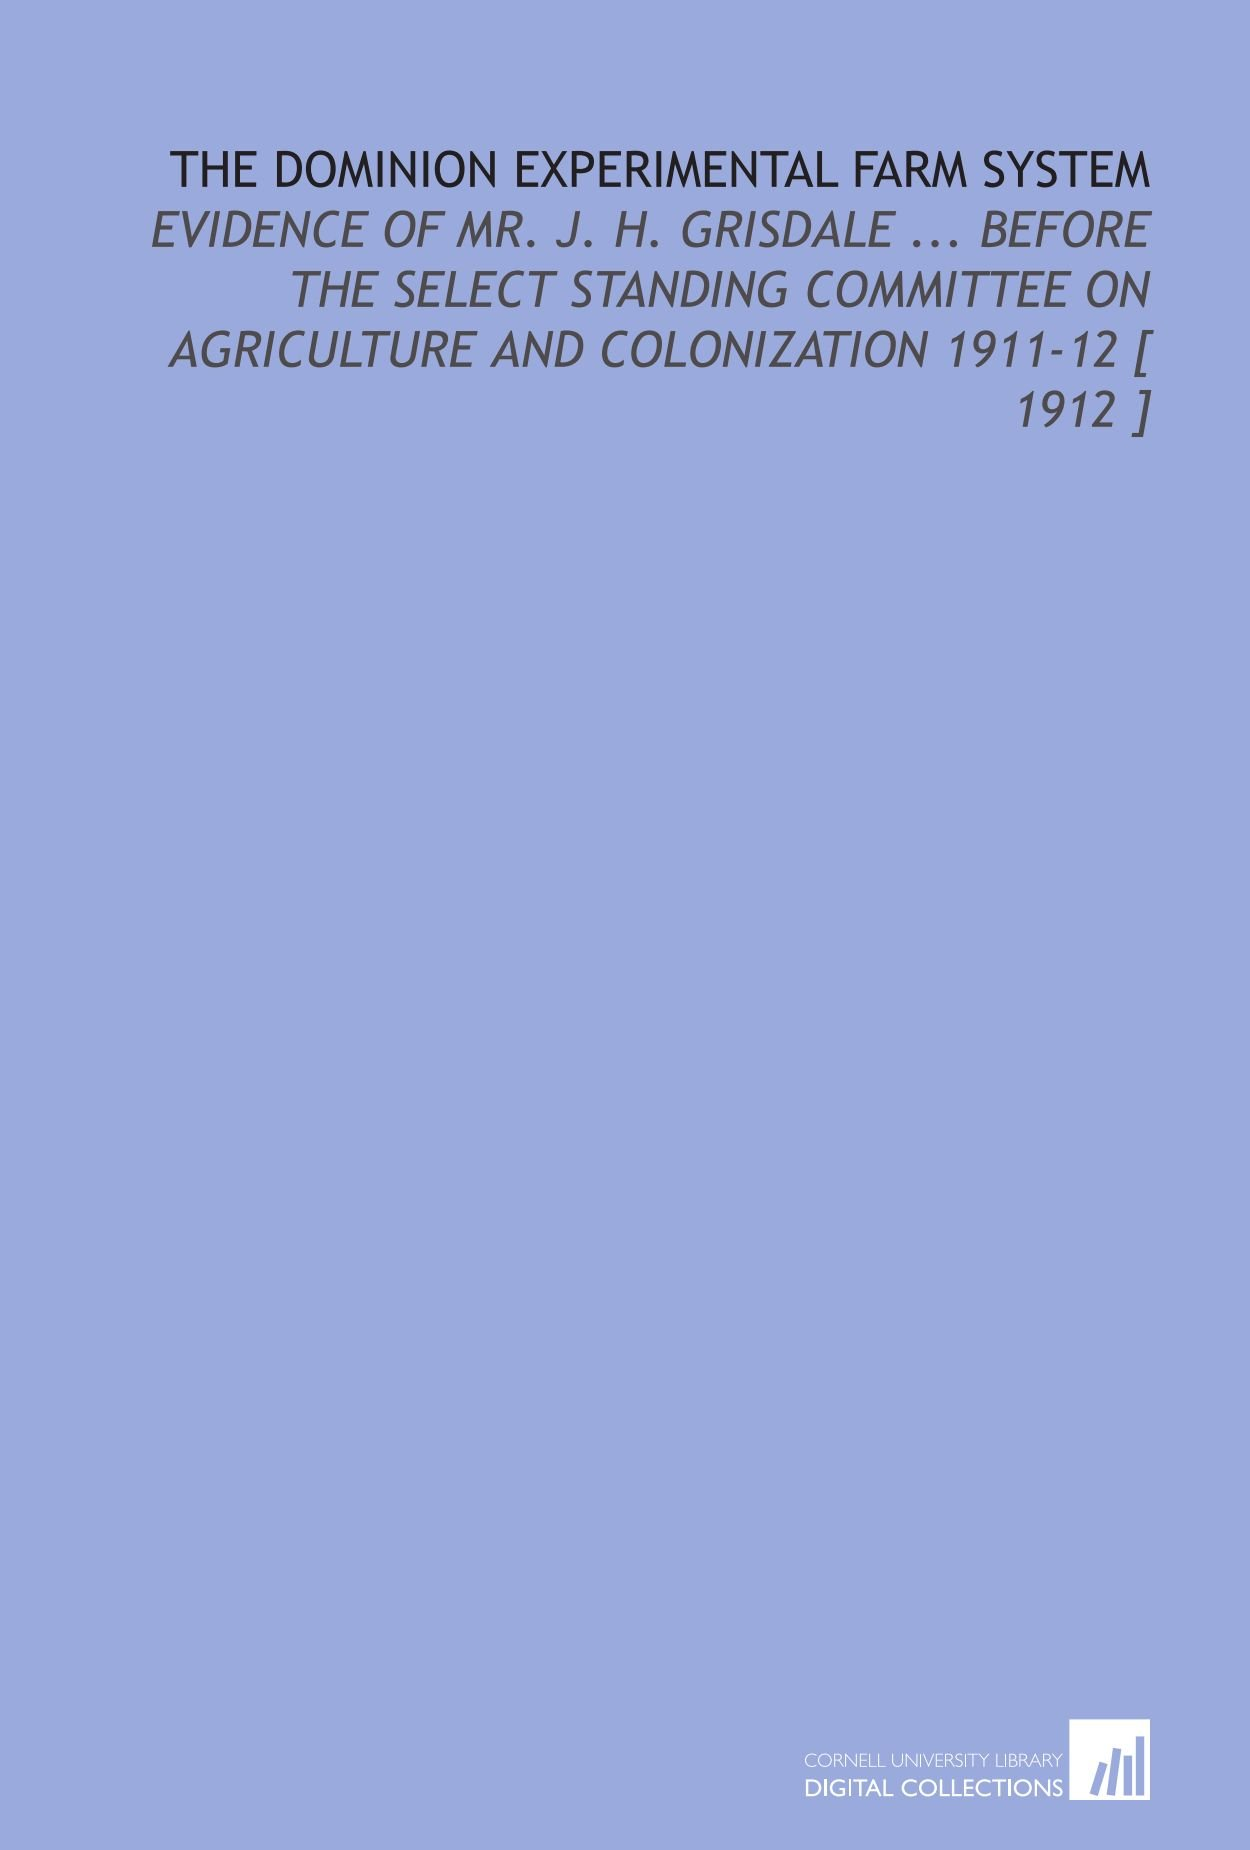 Download The Dominion Experimental Farm System: Evidence of Mr. J. H. Grisdale ... Before the Select Standing Committee on Agriculture and Colonization 1911-12 [ 1912 ] PDF